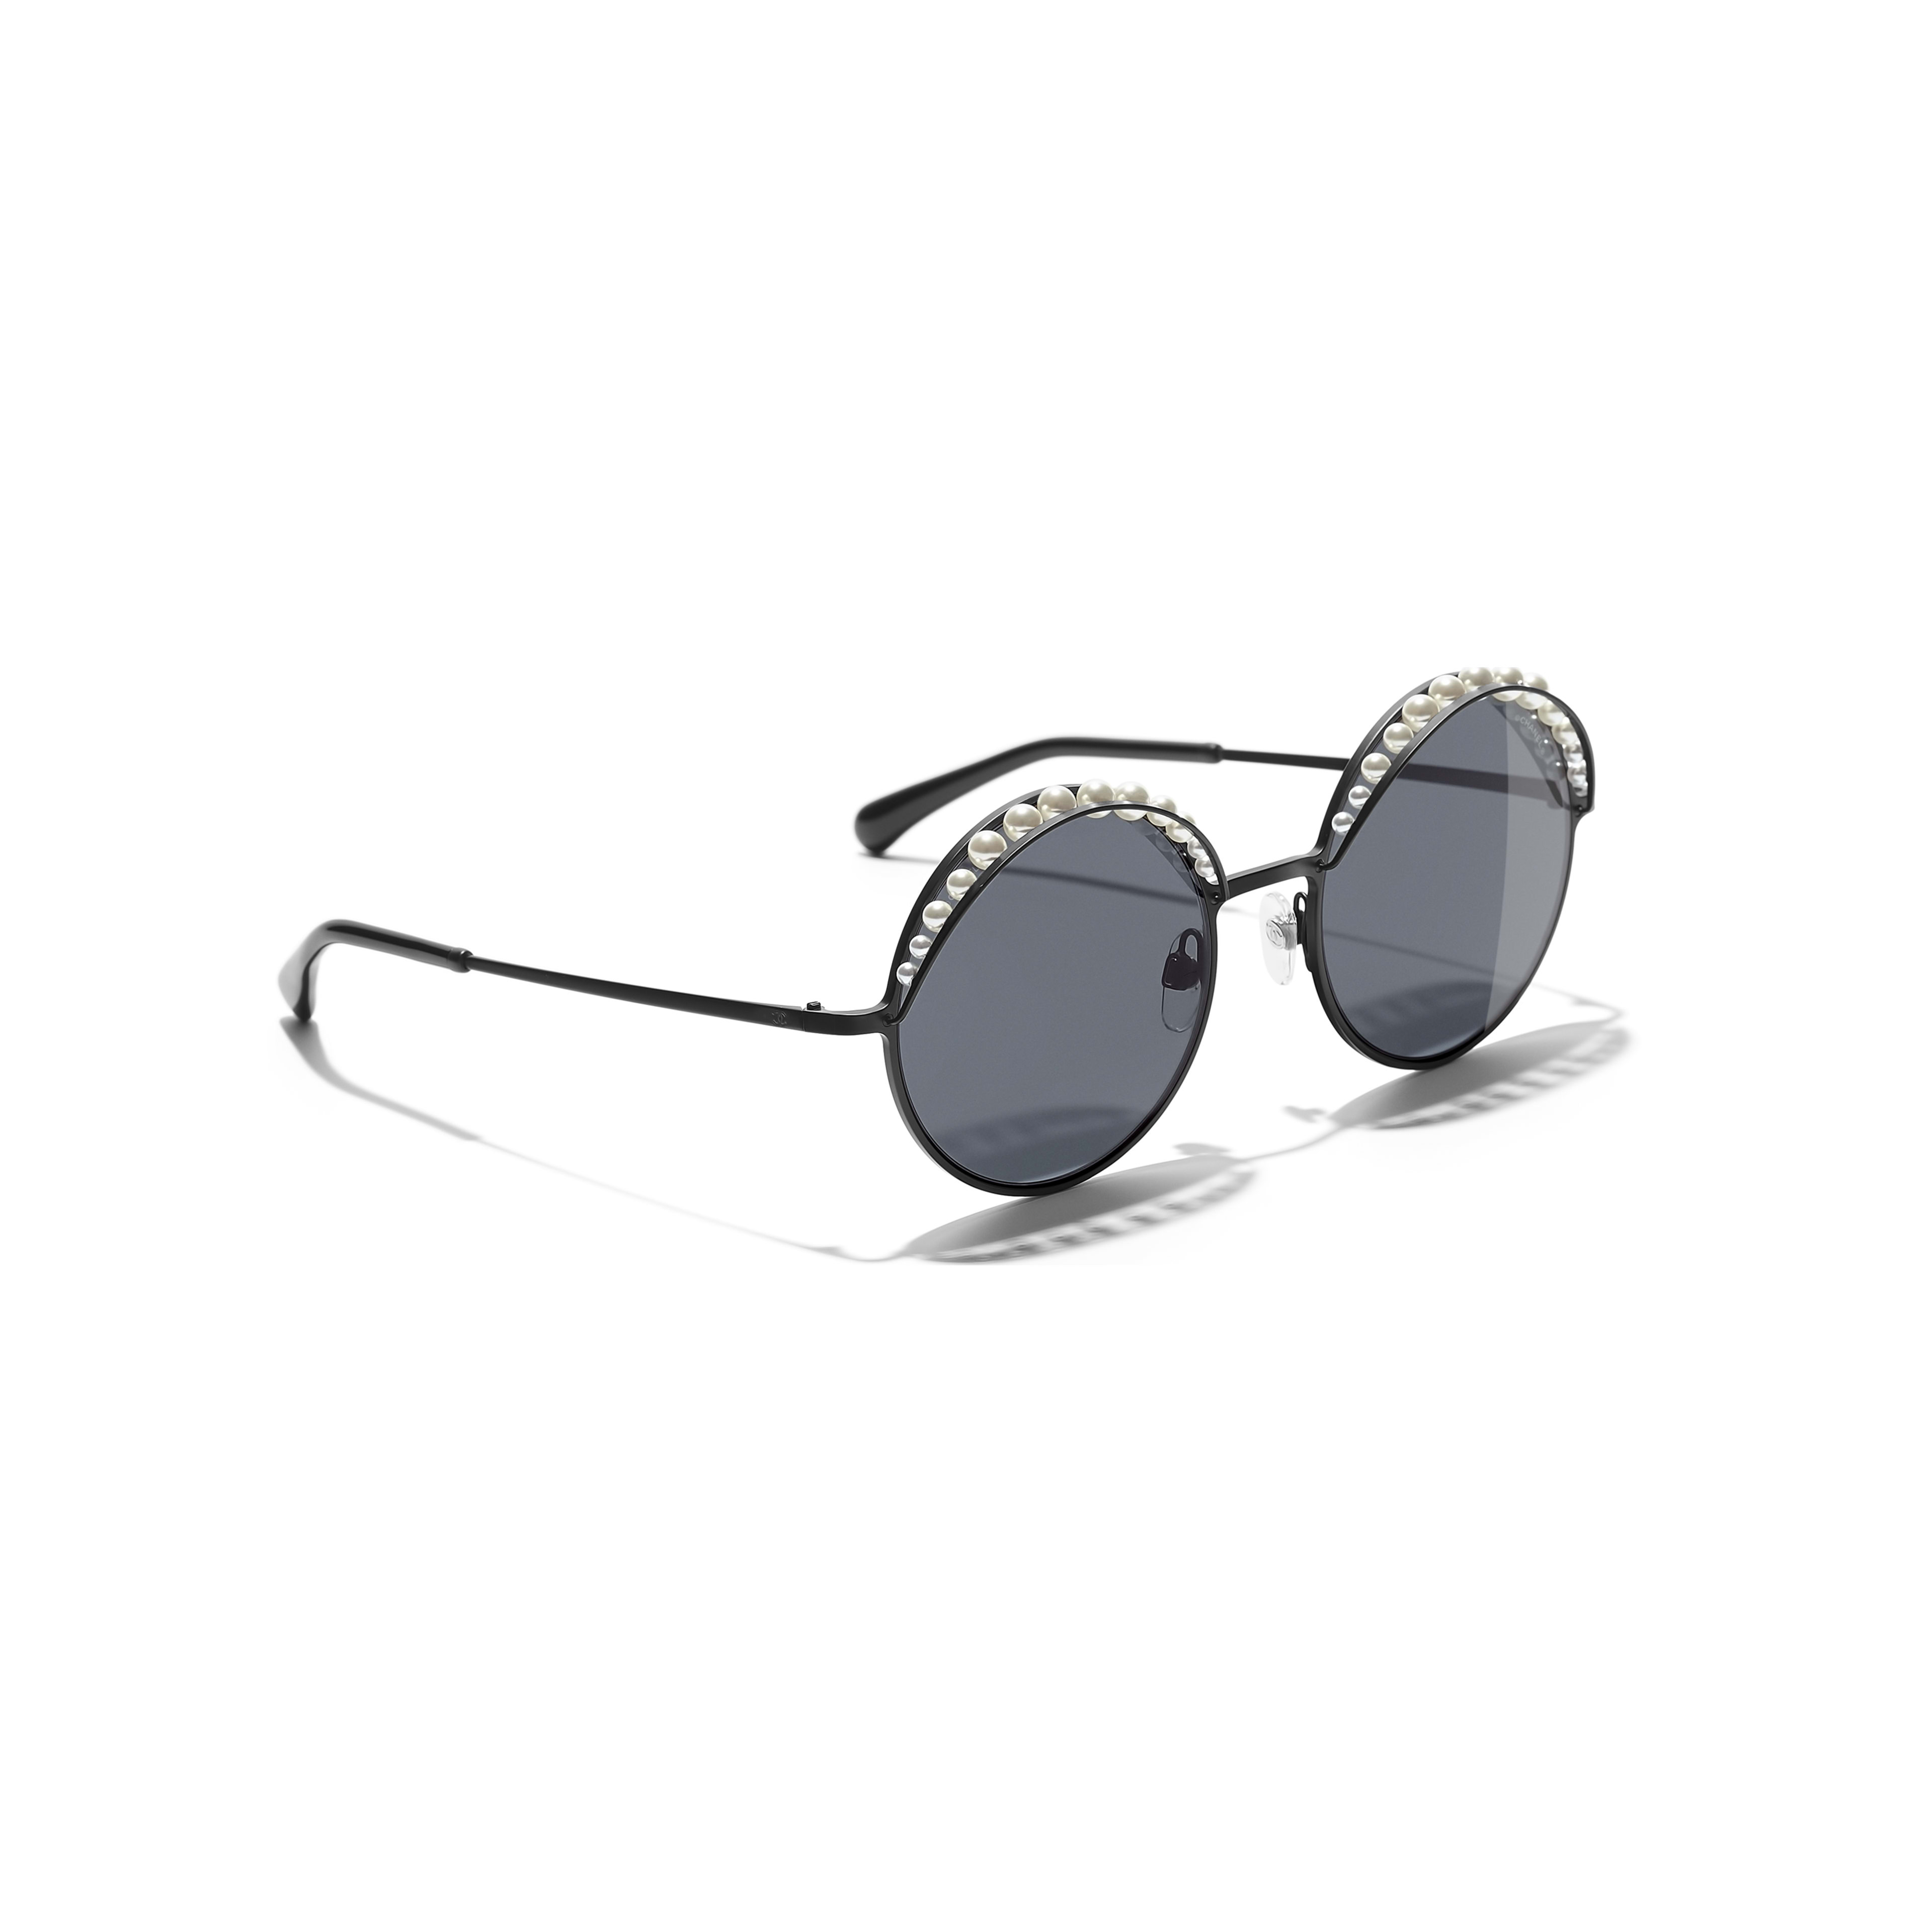 Round Sunglasses - Black - Metal & Imitation Pearls - Extra view - see full sized version